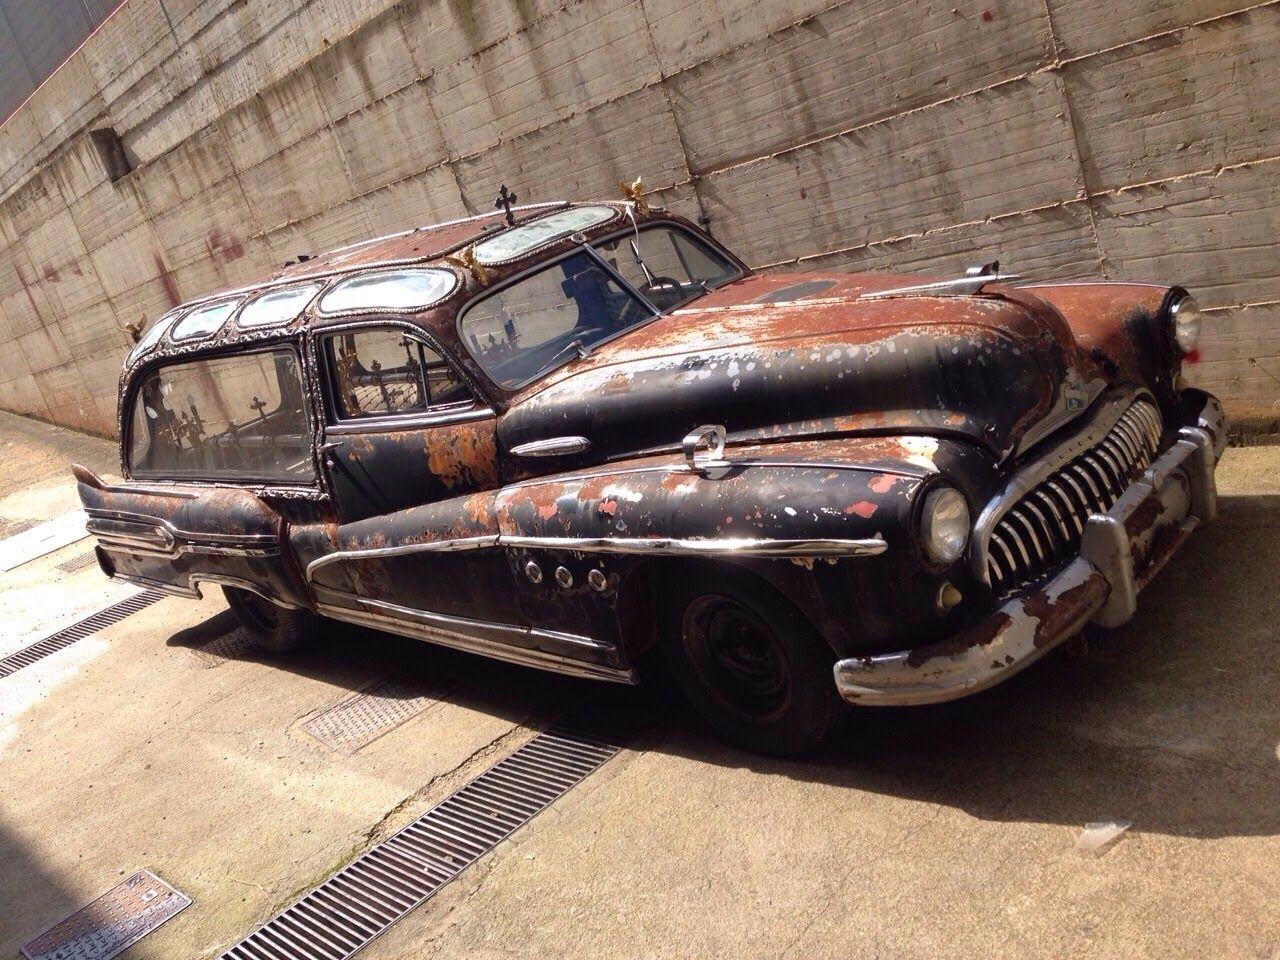 It has a new home, and air in the tires. 1947 Buick hearse